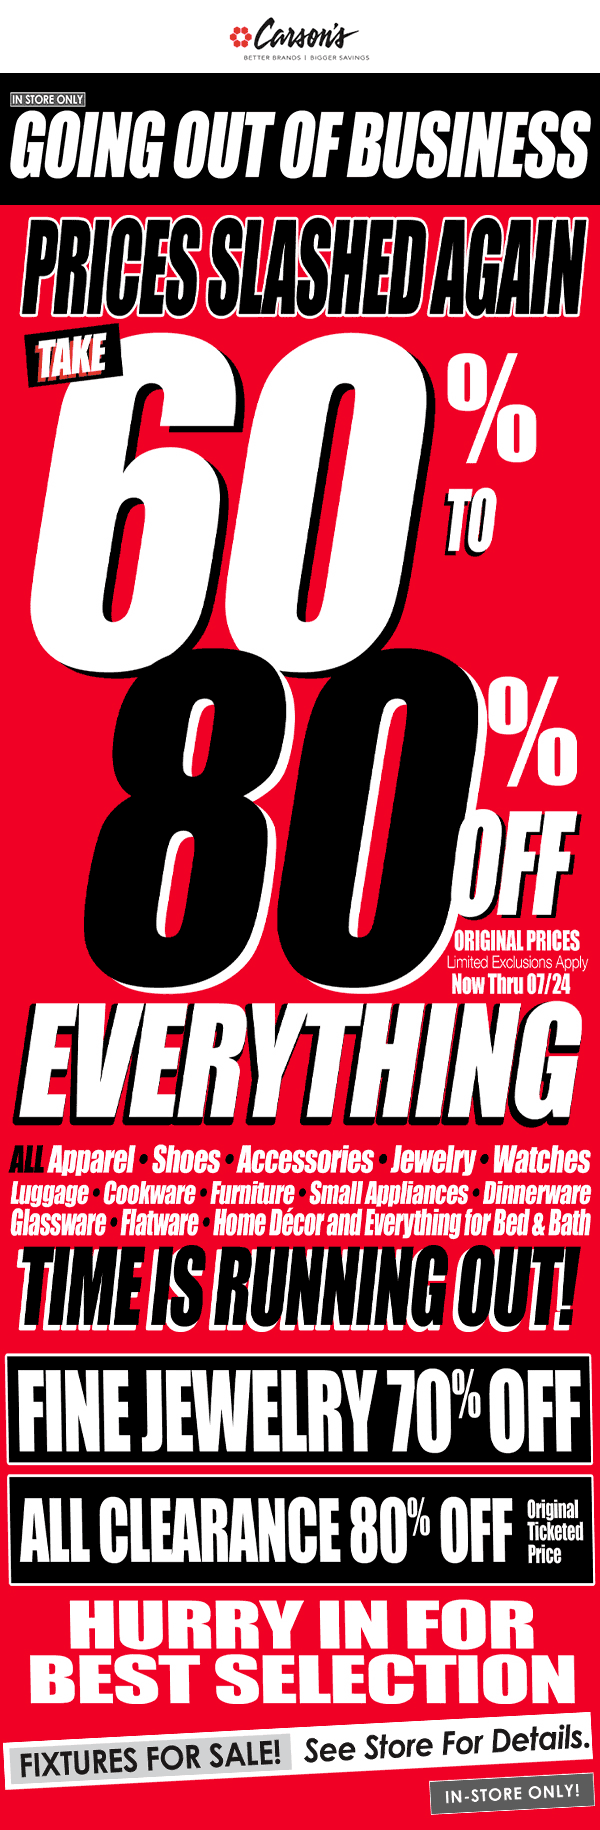 Carsons.com Promo Coupon 60-80% off everything at Carsons going out-of-business liquidation